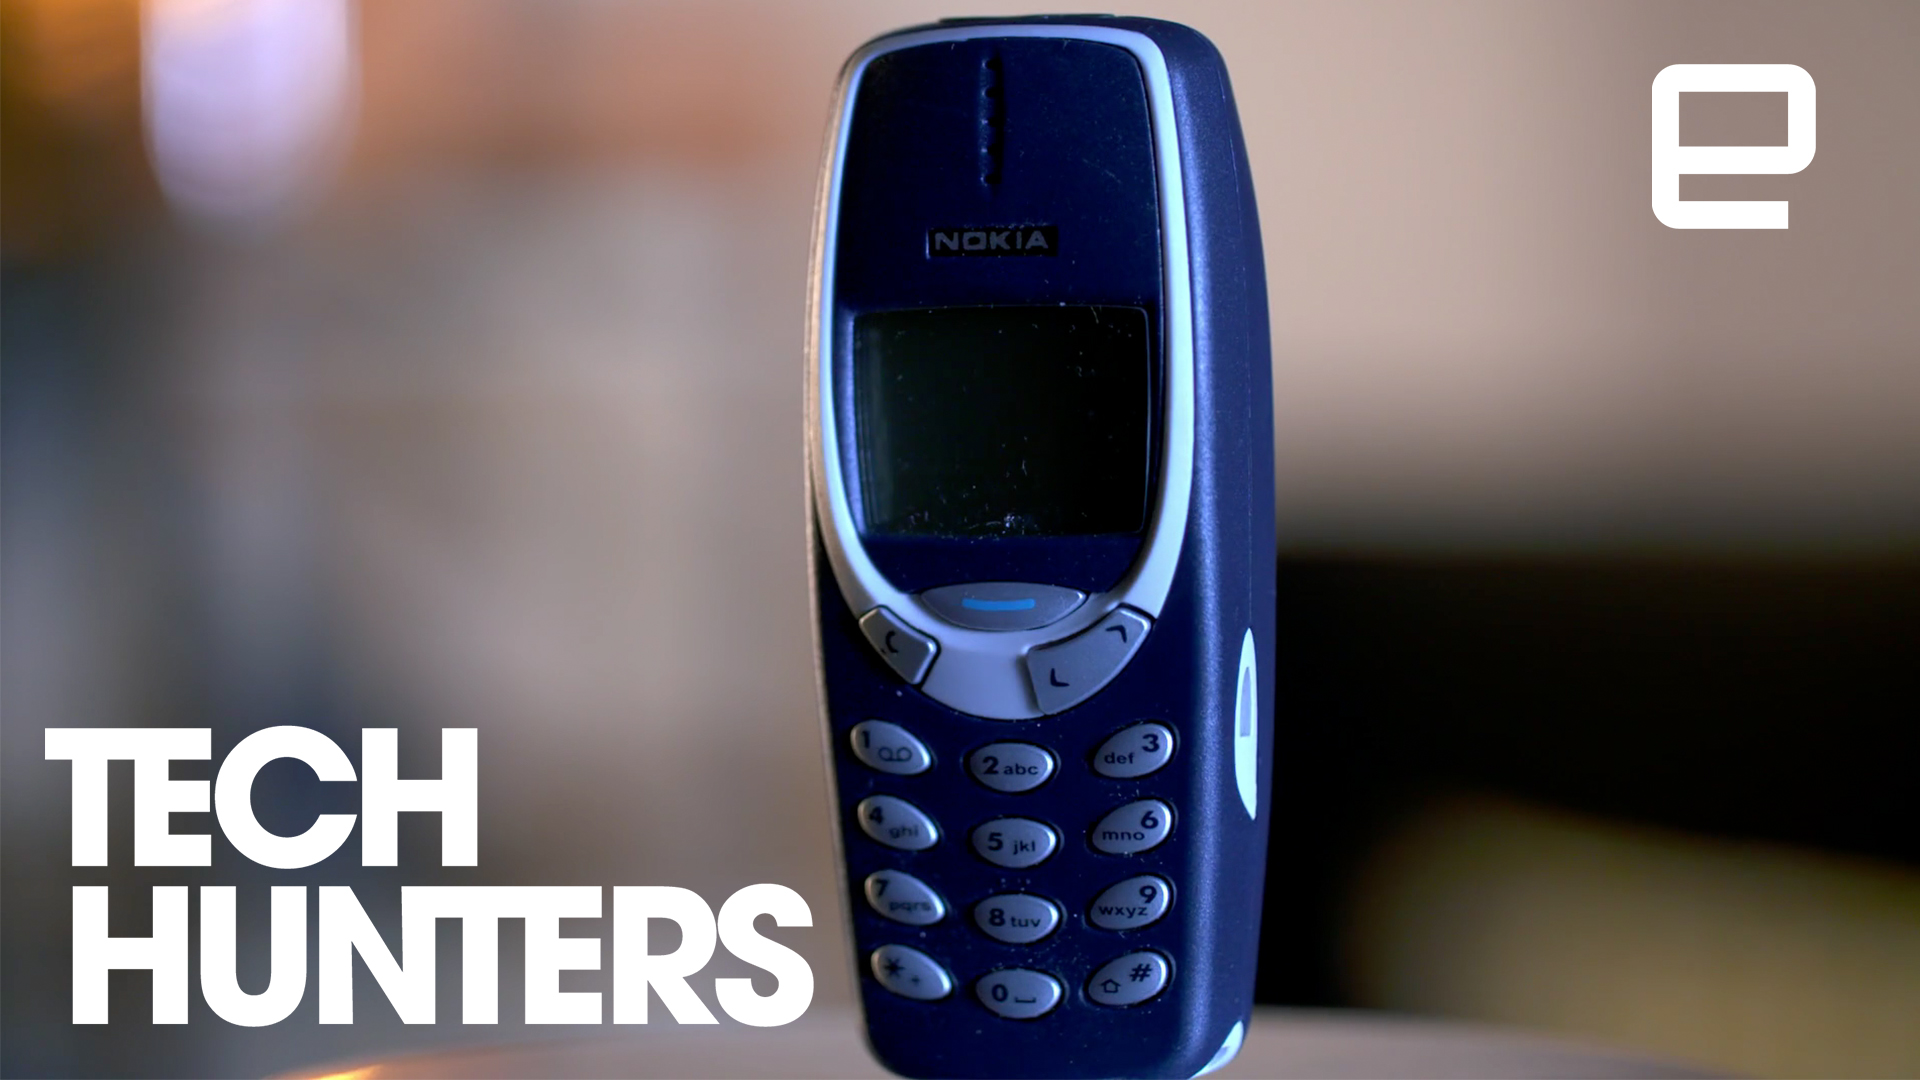 Tech Hunters: When Phones Were Phones With The Nokia 3310